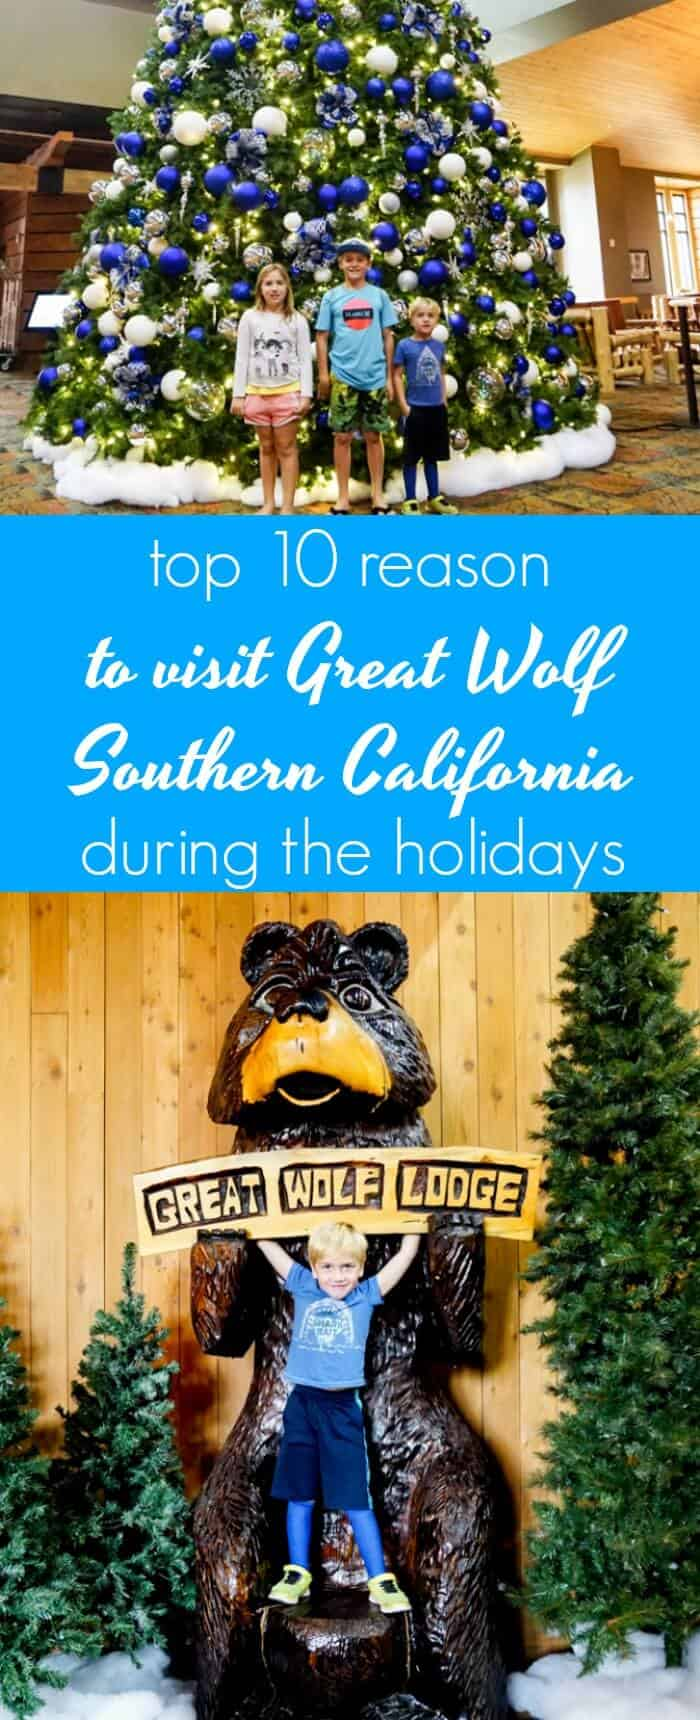 Visit The Great Wolf Lodge Southern California During the Holidays